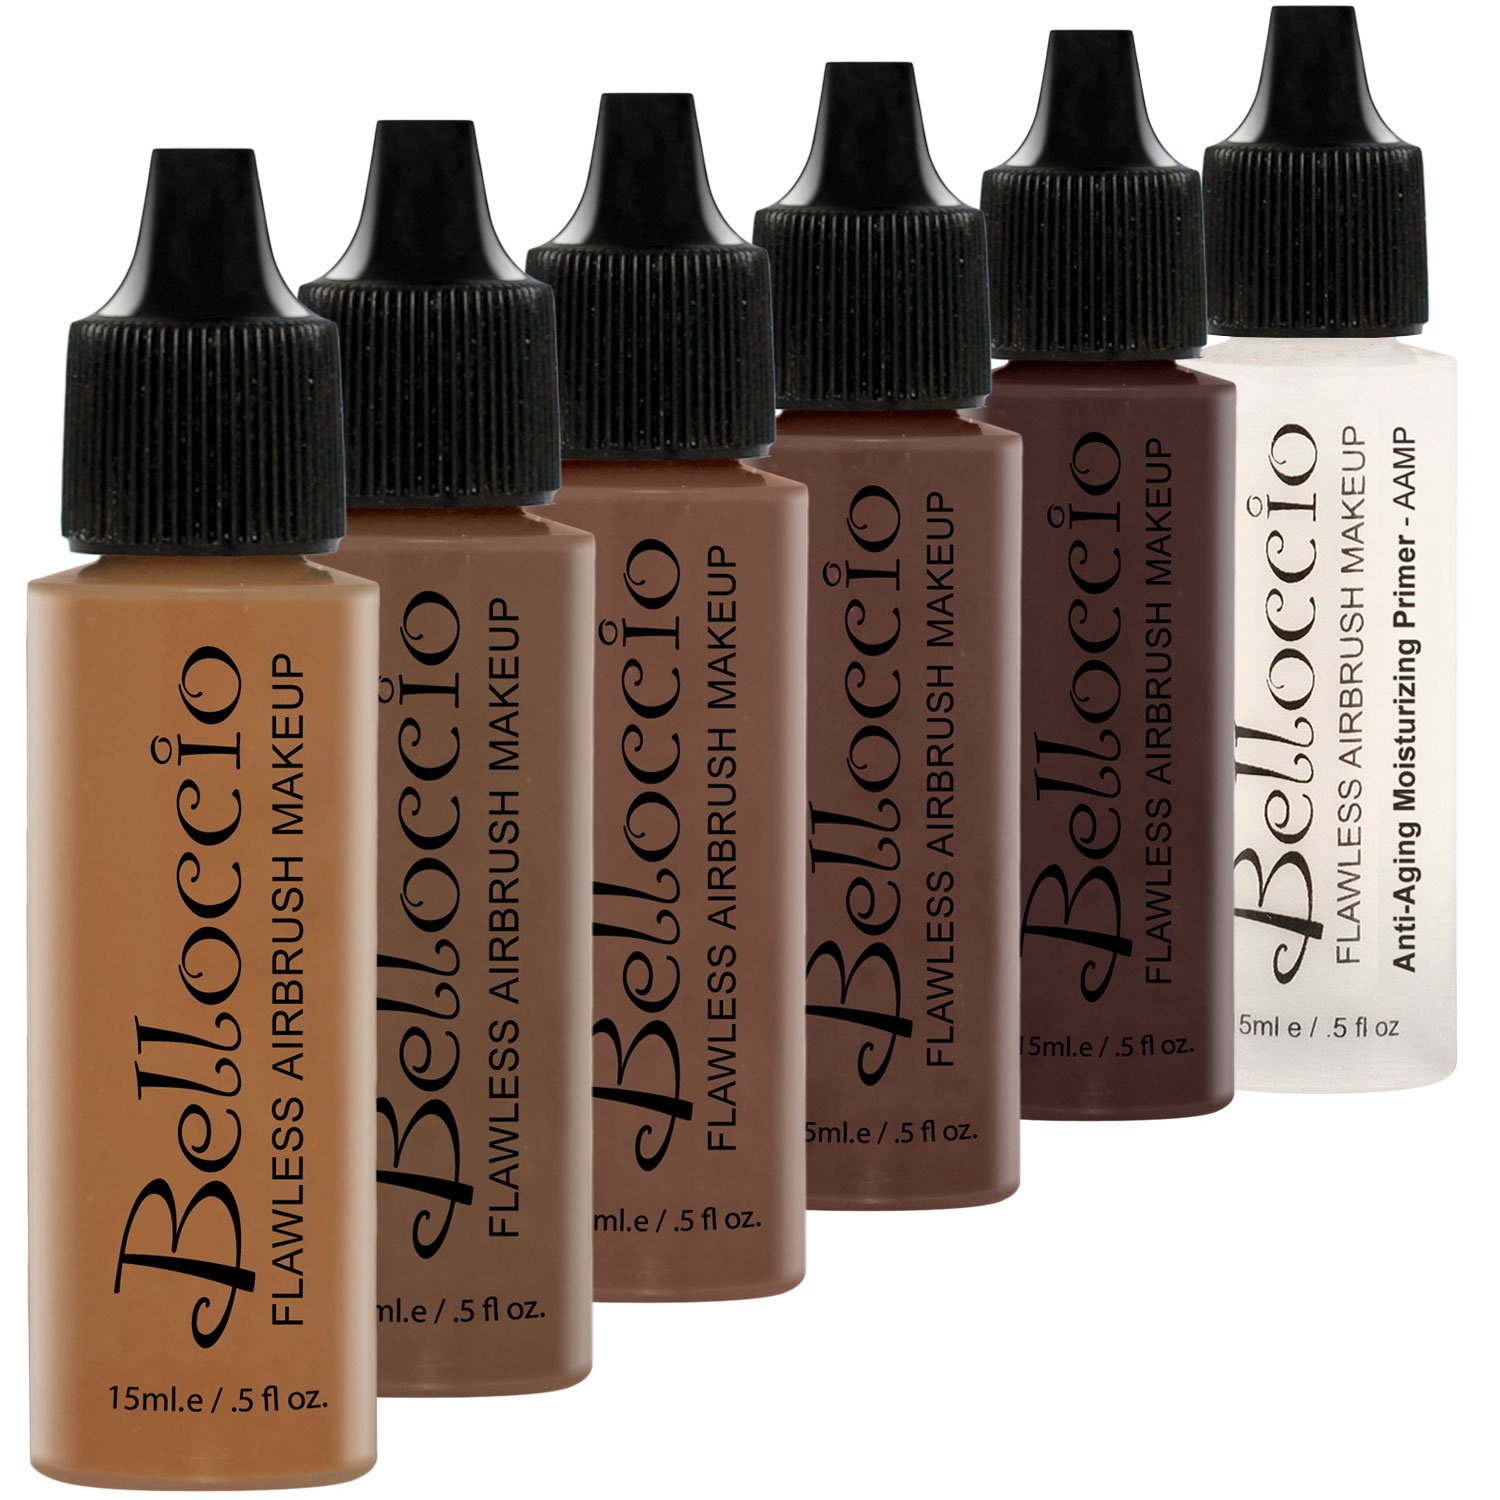 Belloccio Dark Color Shade Airbrush Makeup Foundation Set - Professional Cosmetic Airbrush Makeup in 1/2 oz Bottles